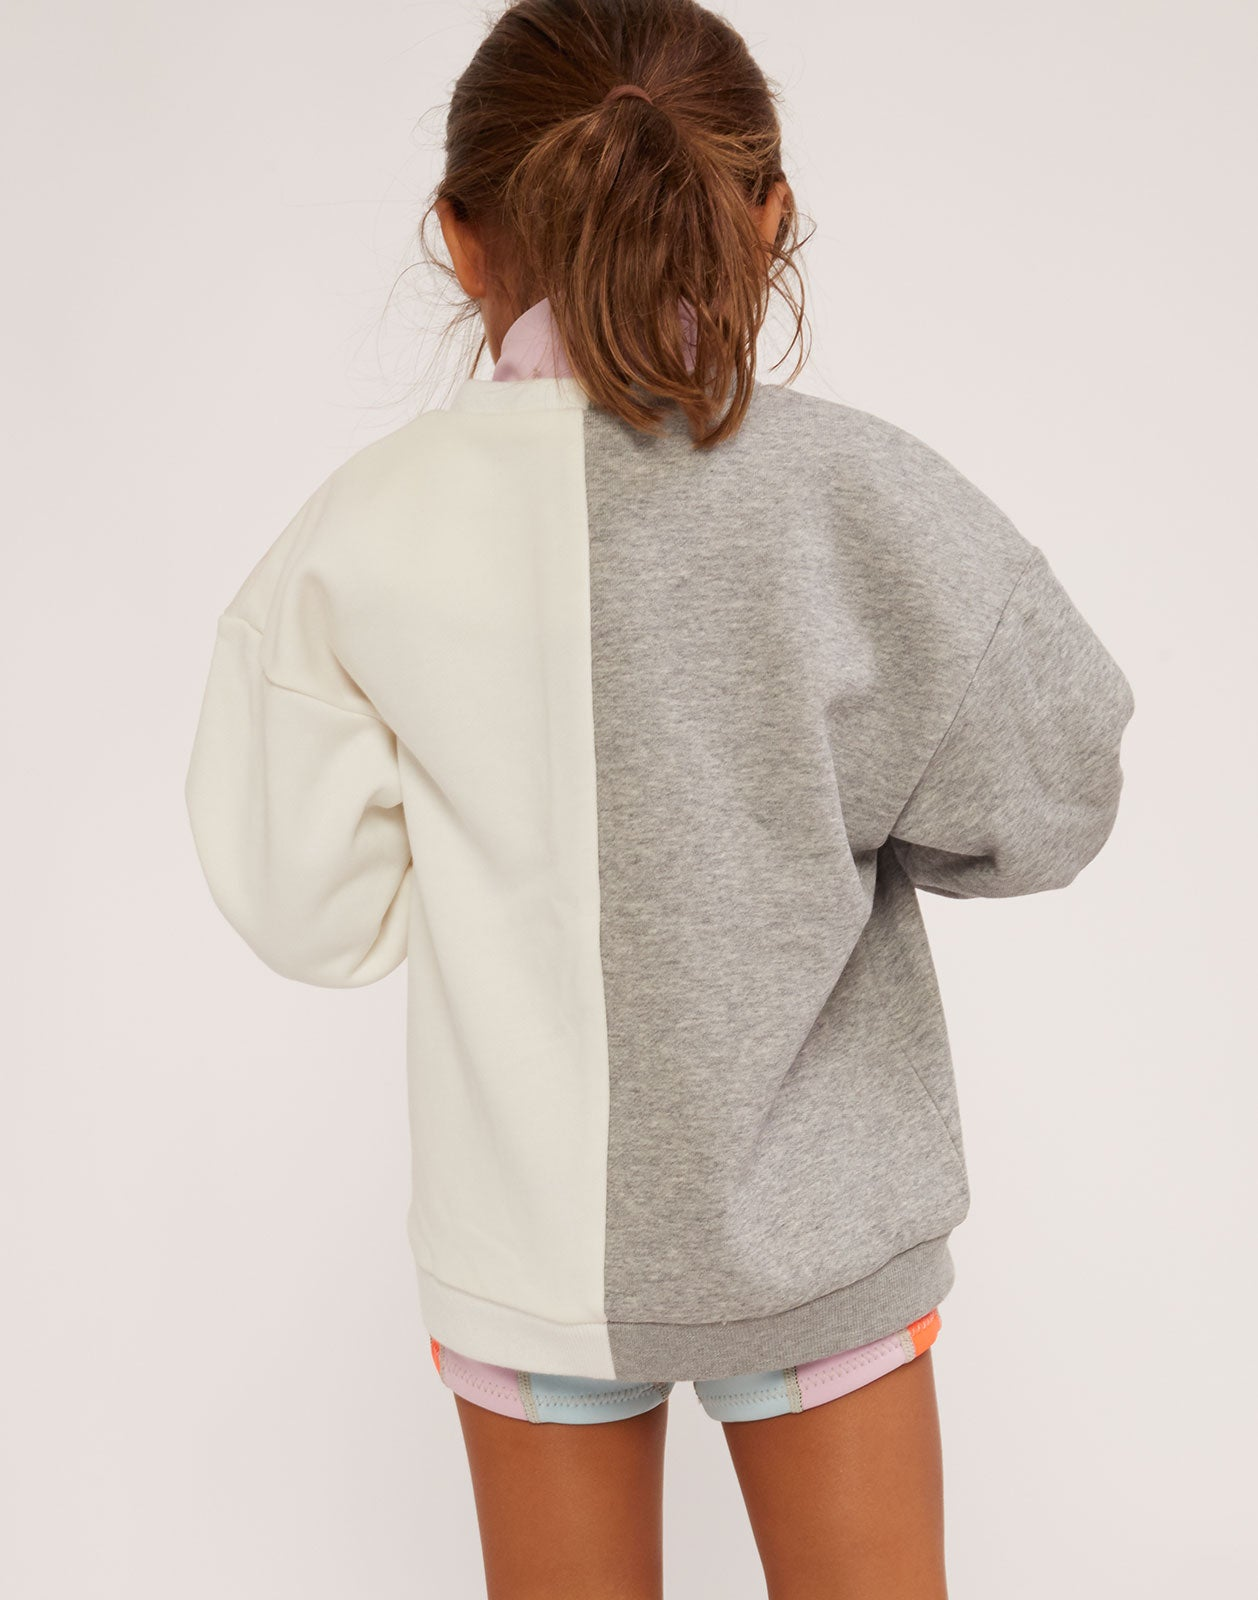 Back view of Kid's CaliYork Sweatshirt in half grey and half white.